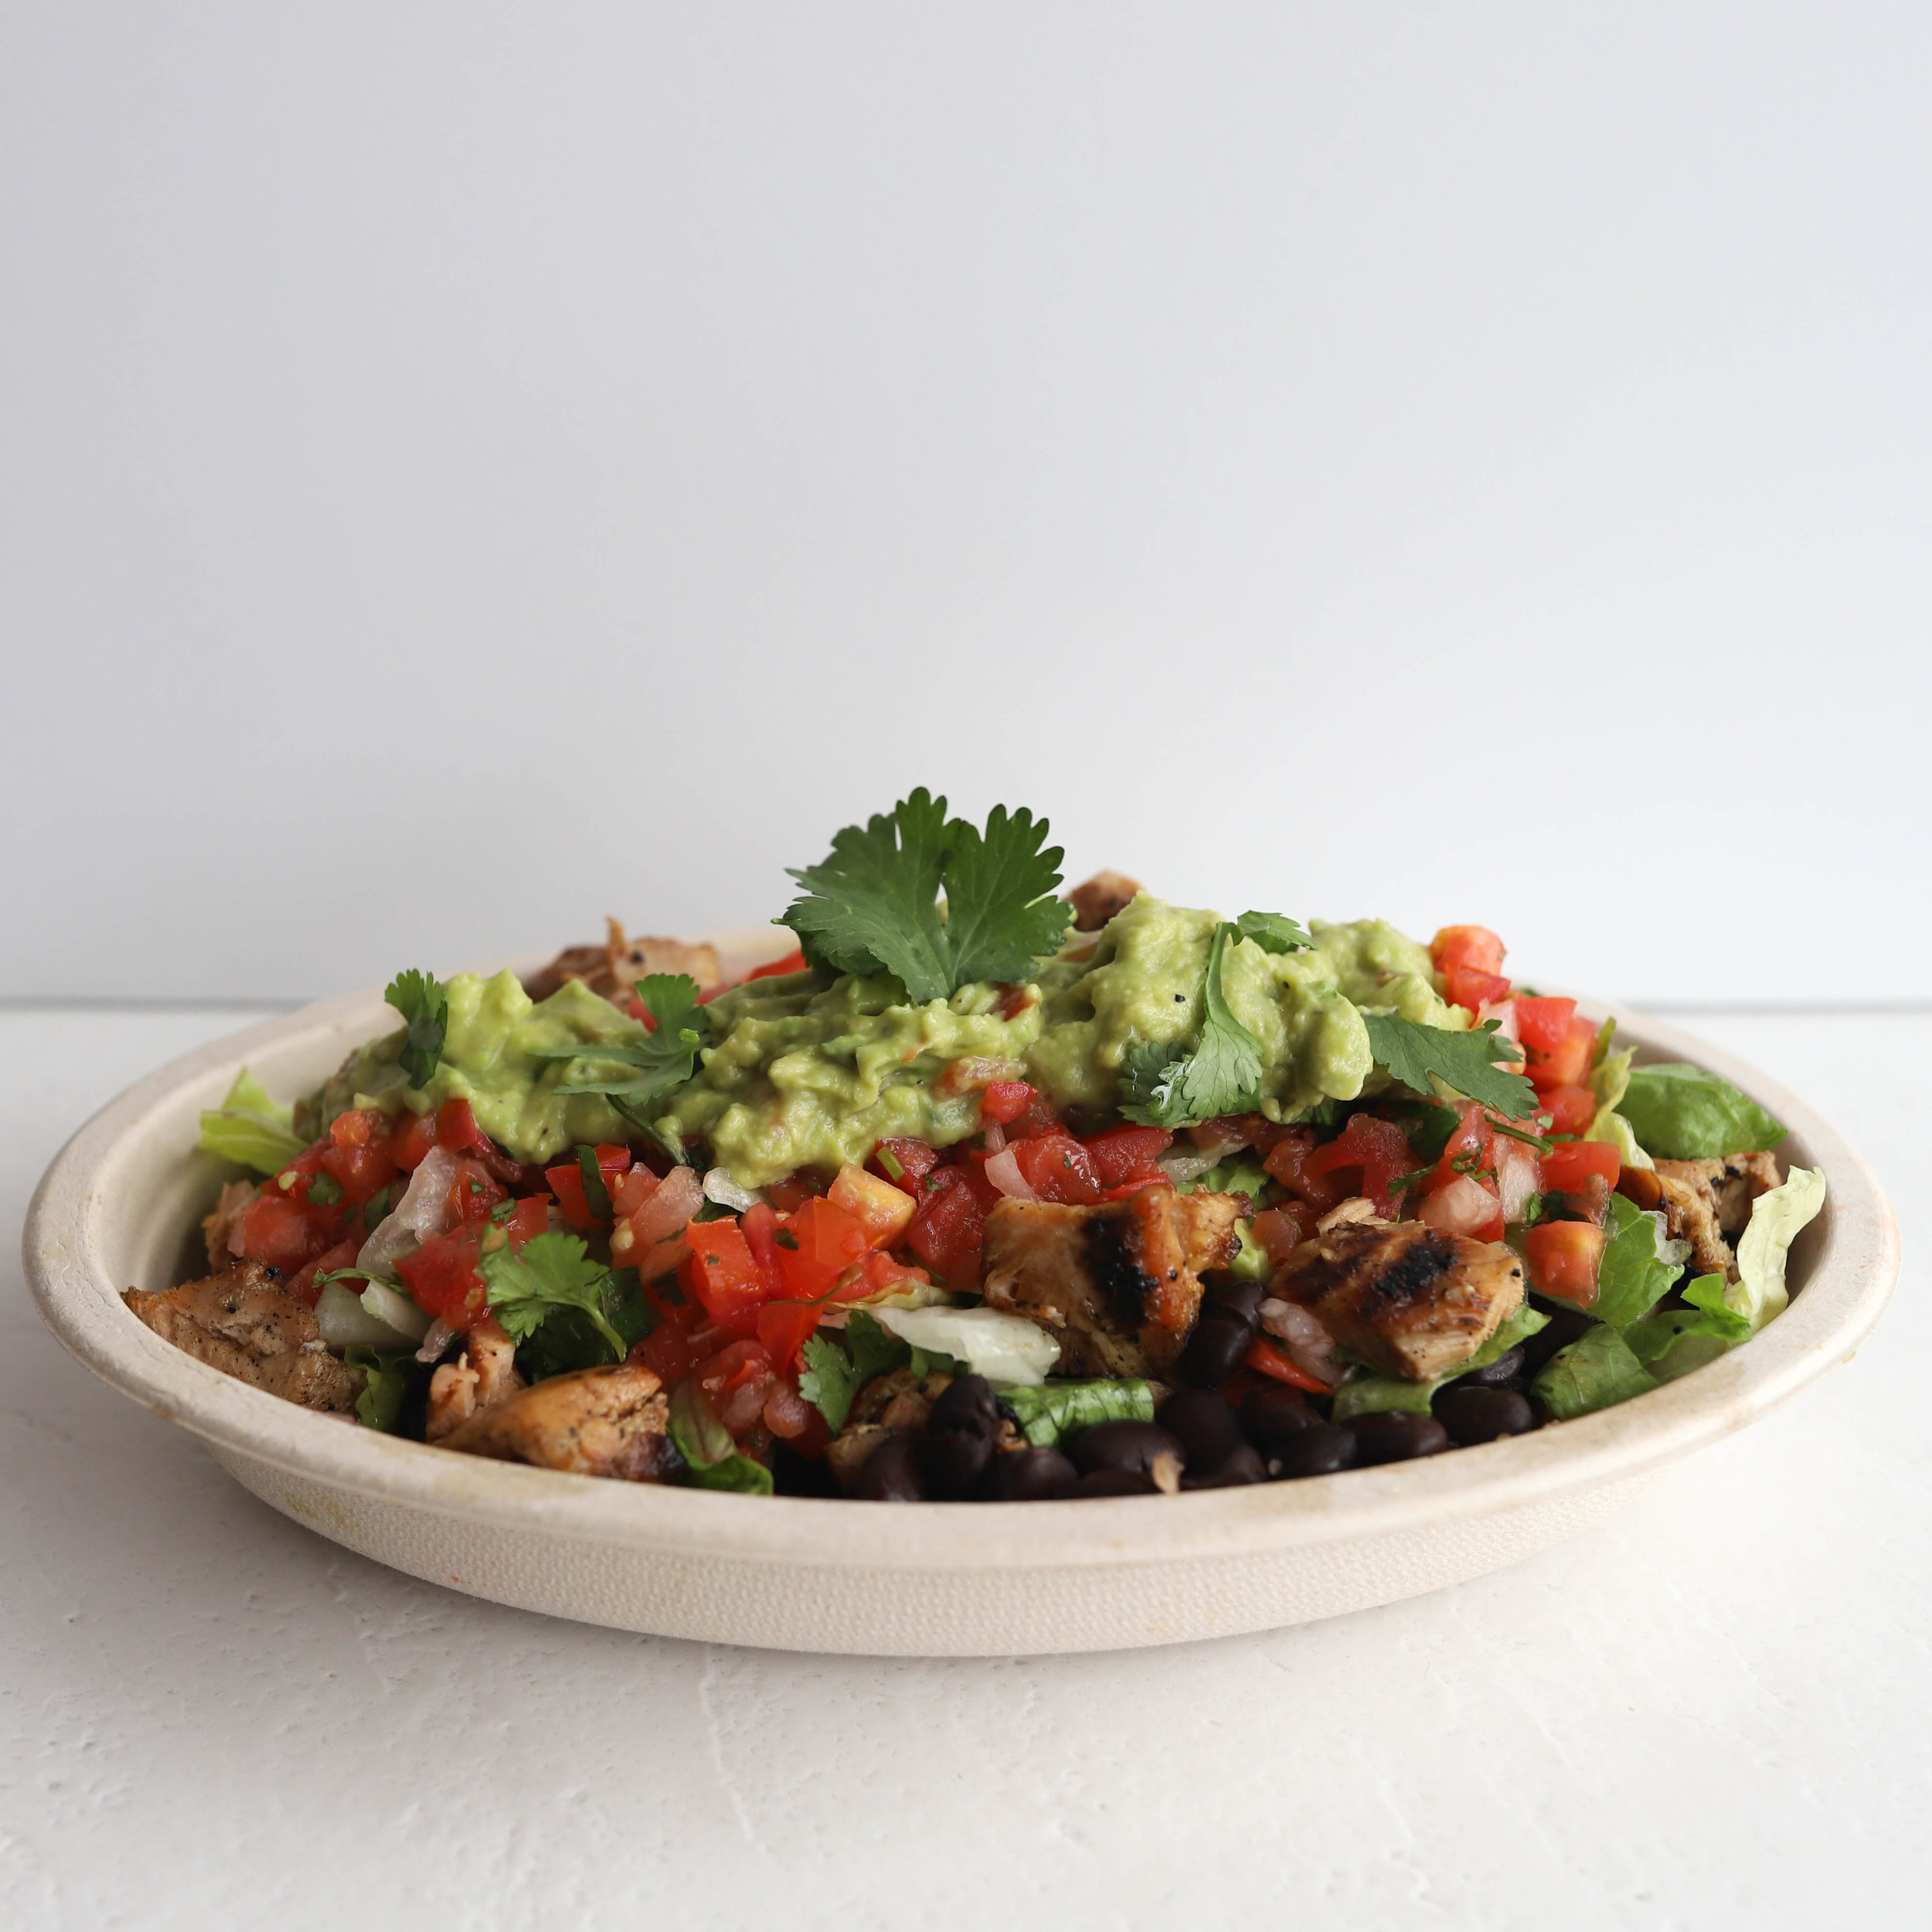 grilled chicken burrito bowl.jpg